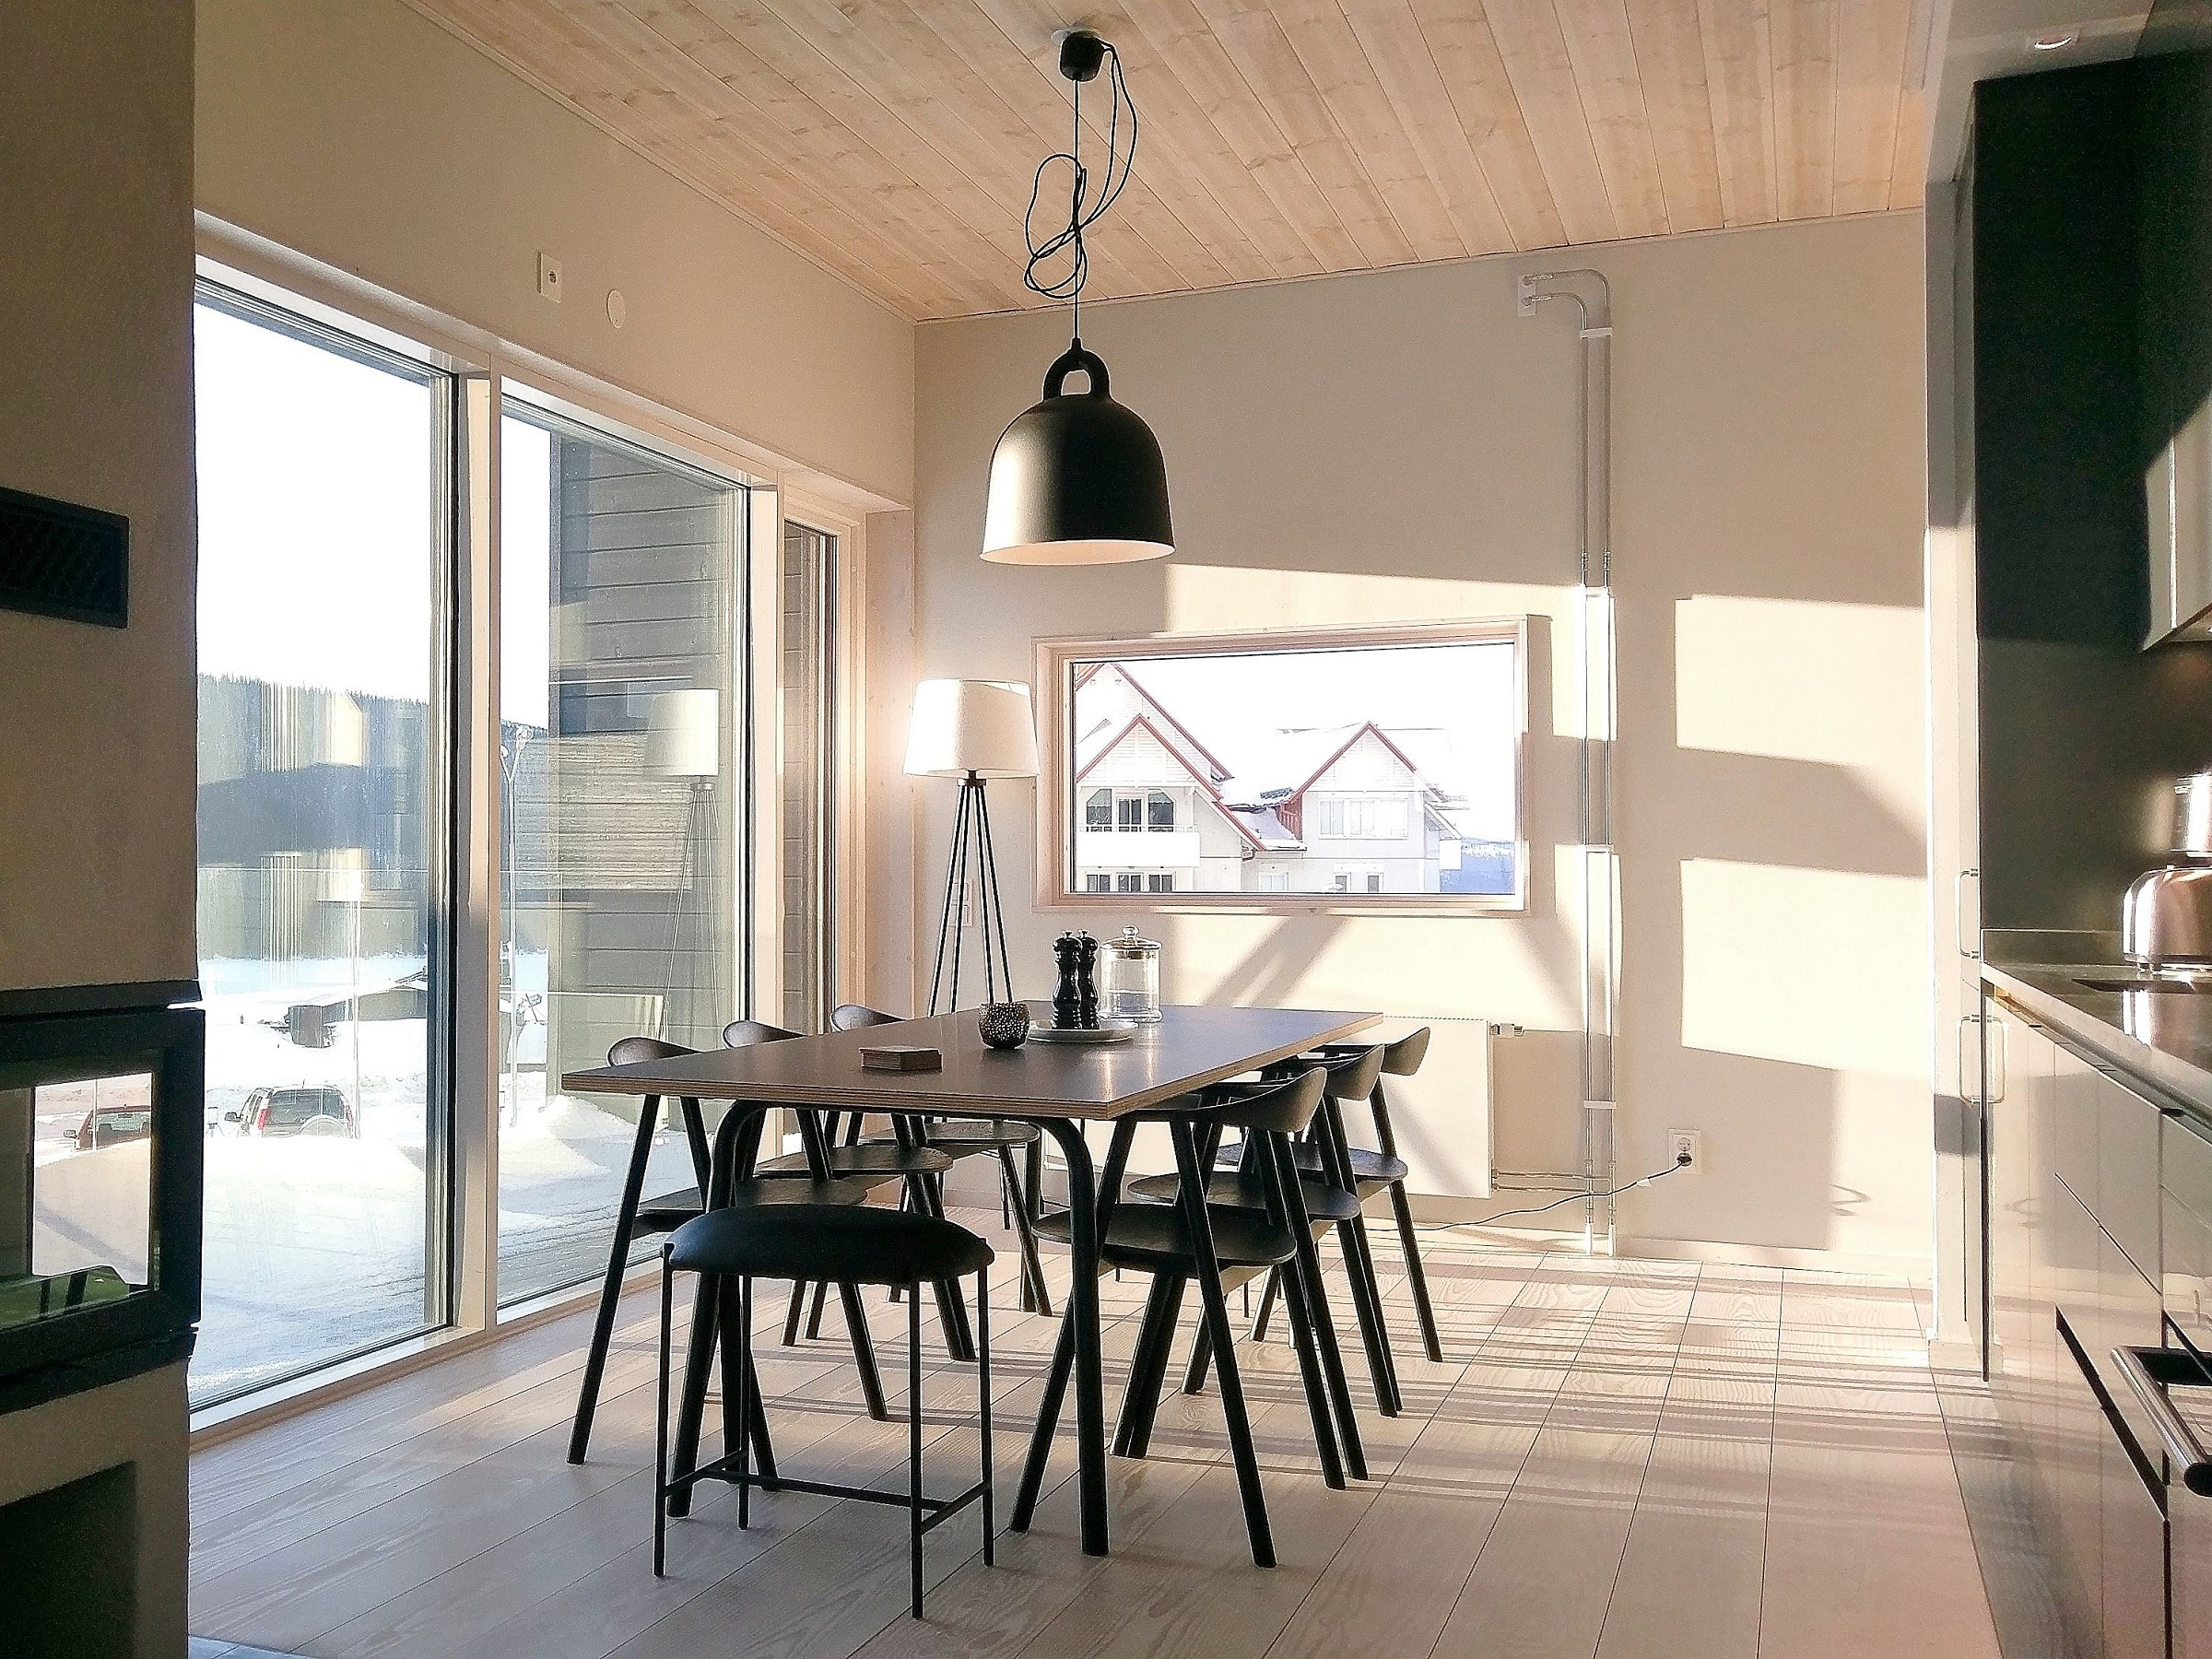 Bright kitchen with large windows in Skiers Lodge in Åre